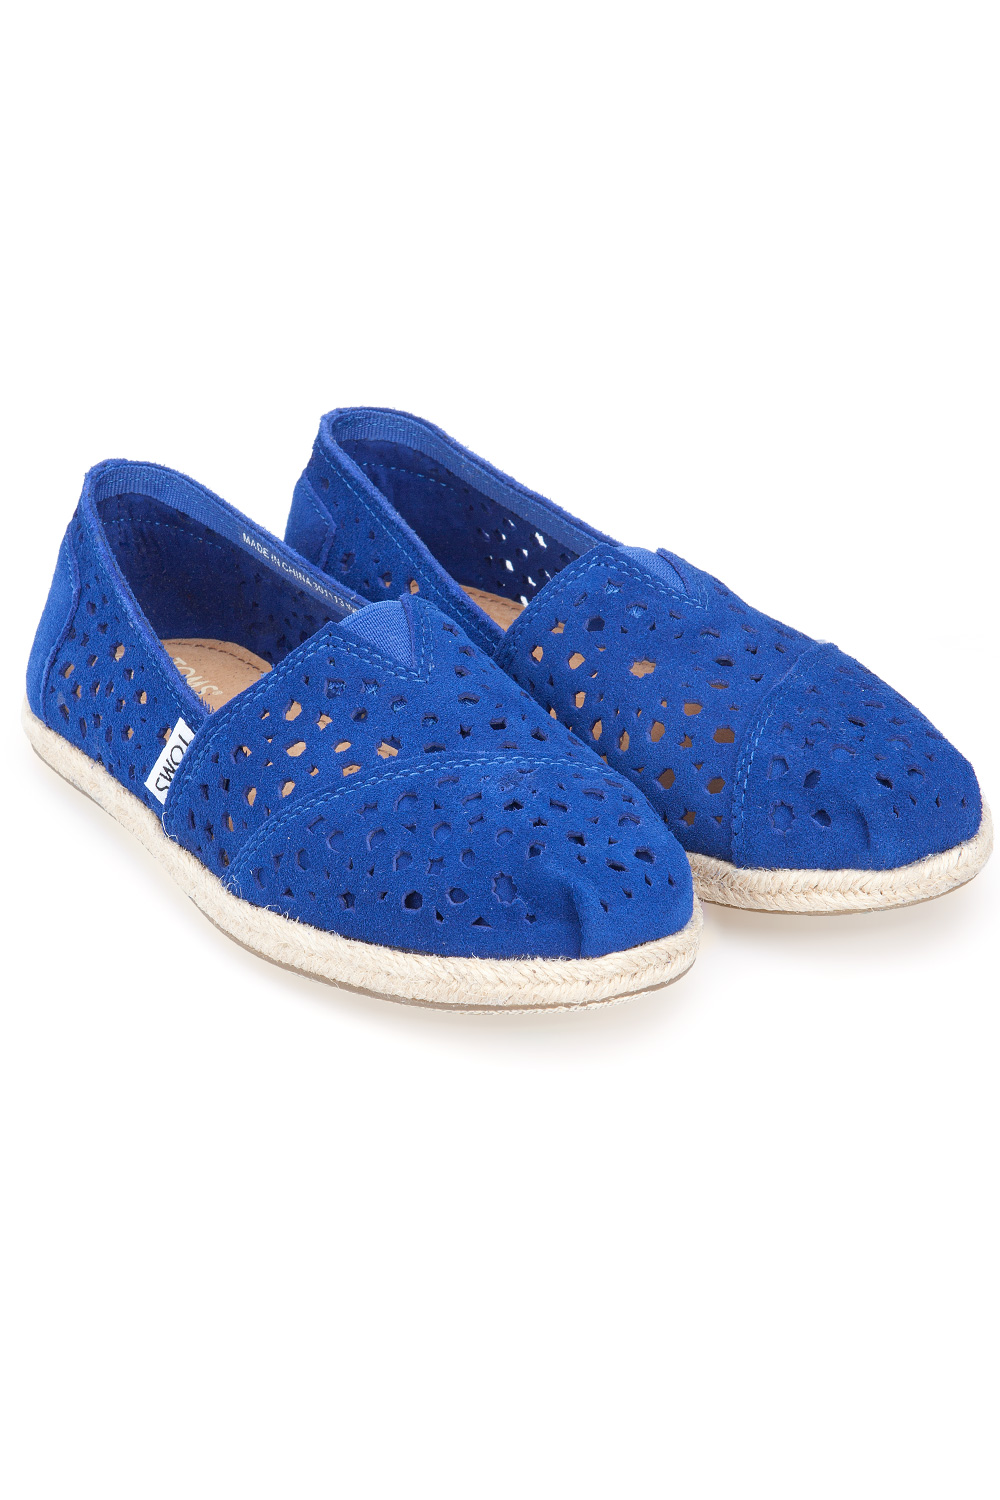 Toms Blue Moroccan Cutout Womens Slip On Blue 365ist